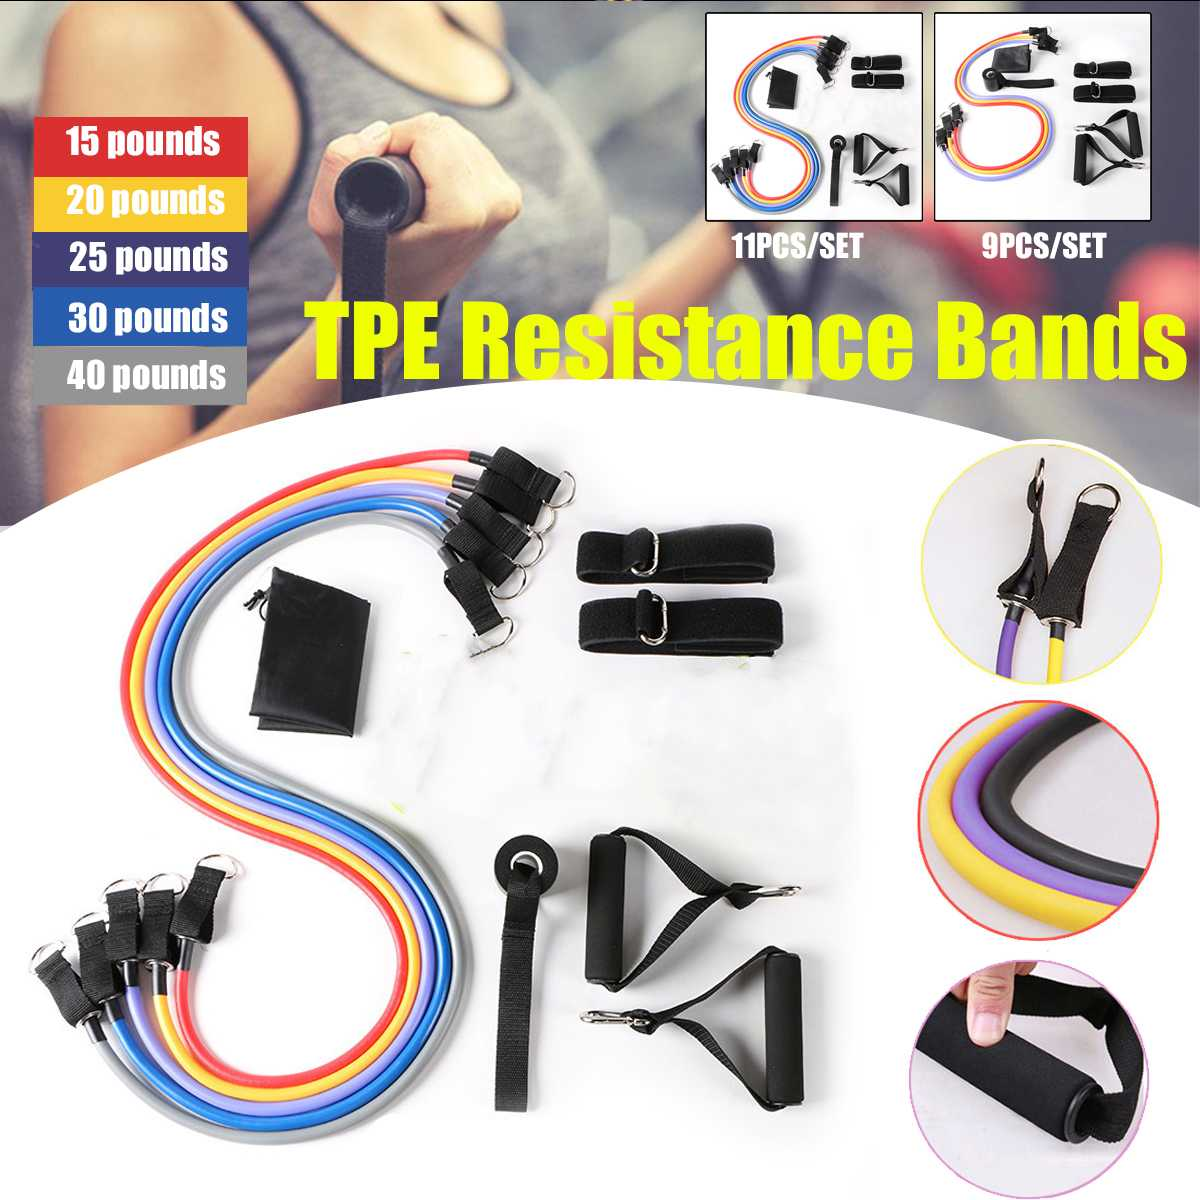 9/11 Pcs Resistance Bands Set Fitness Exercises Resistance Bands Rubber Loop Tube Pedal Workout Yoga Excerciser Training Tools